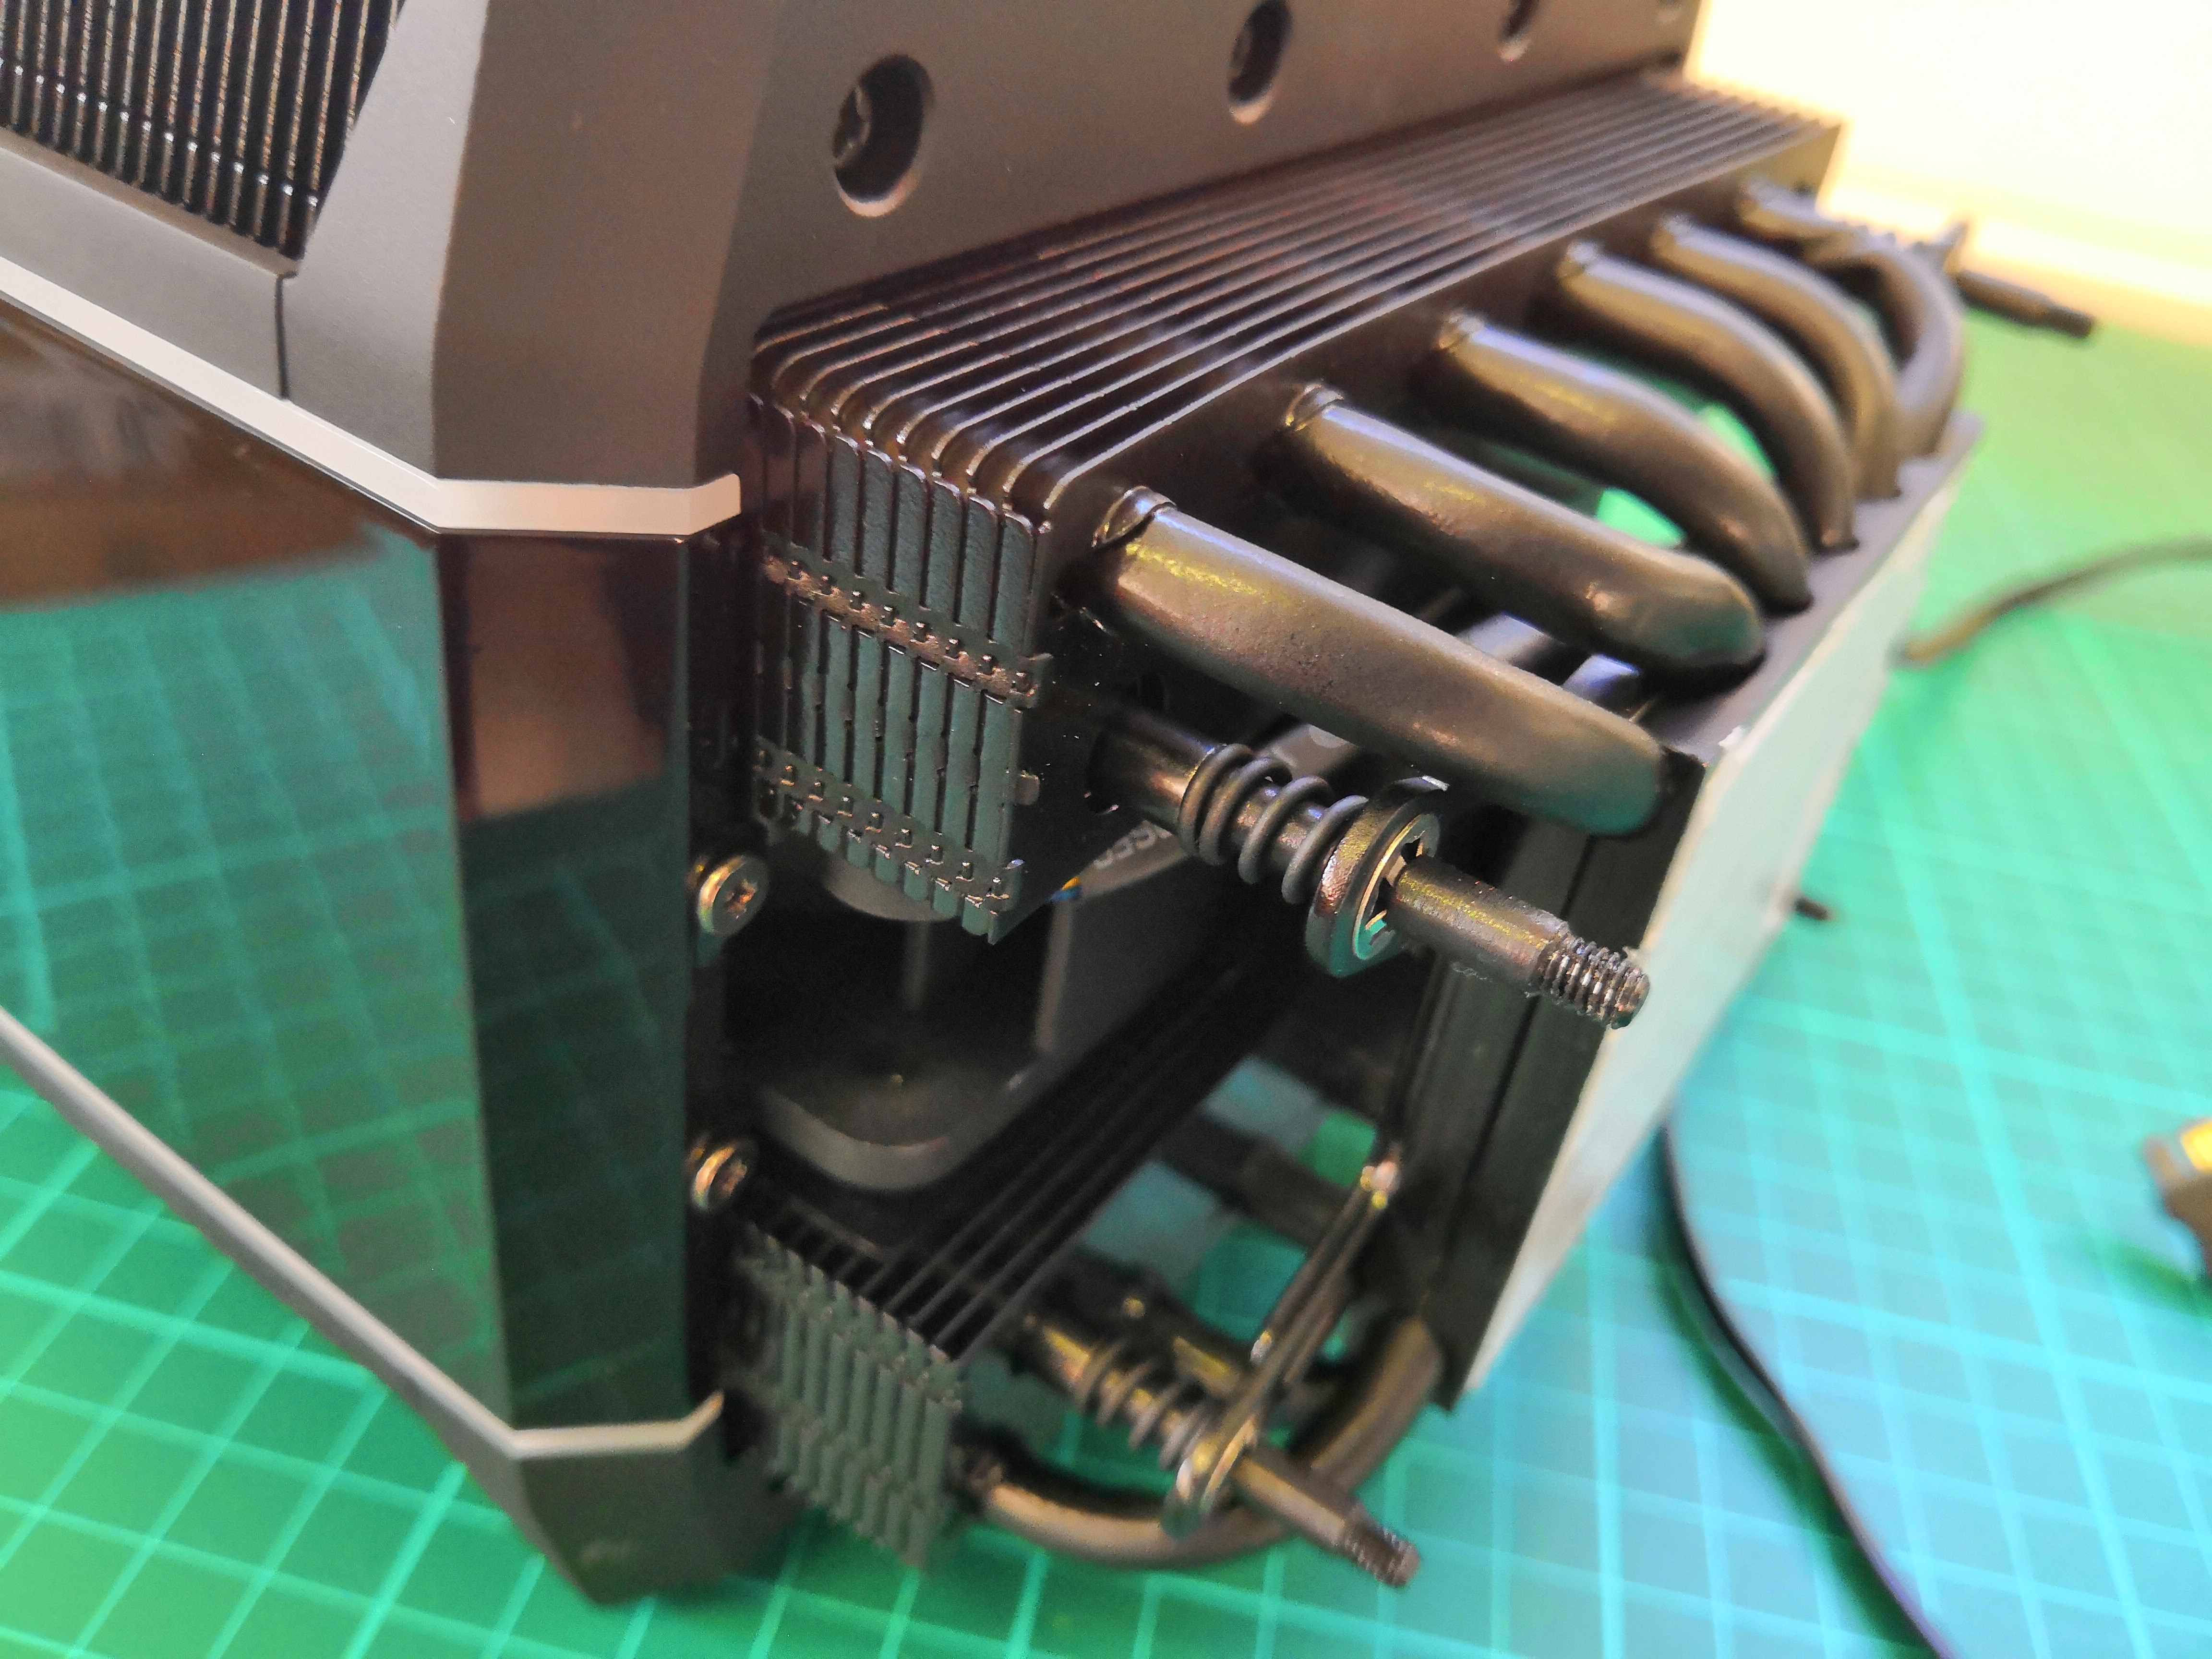 Thermal Comparisons and XFR2: Remember to Remove the CPU Cooler